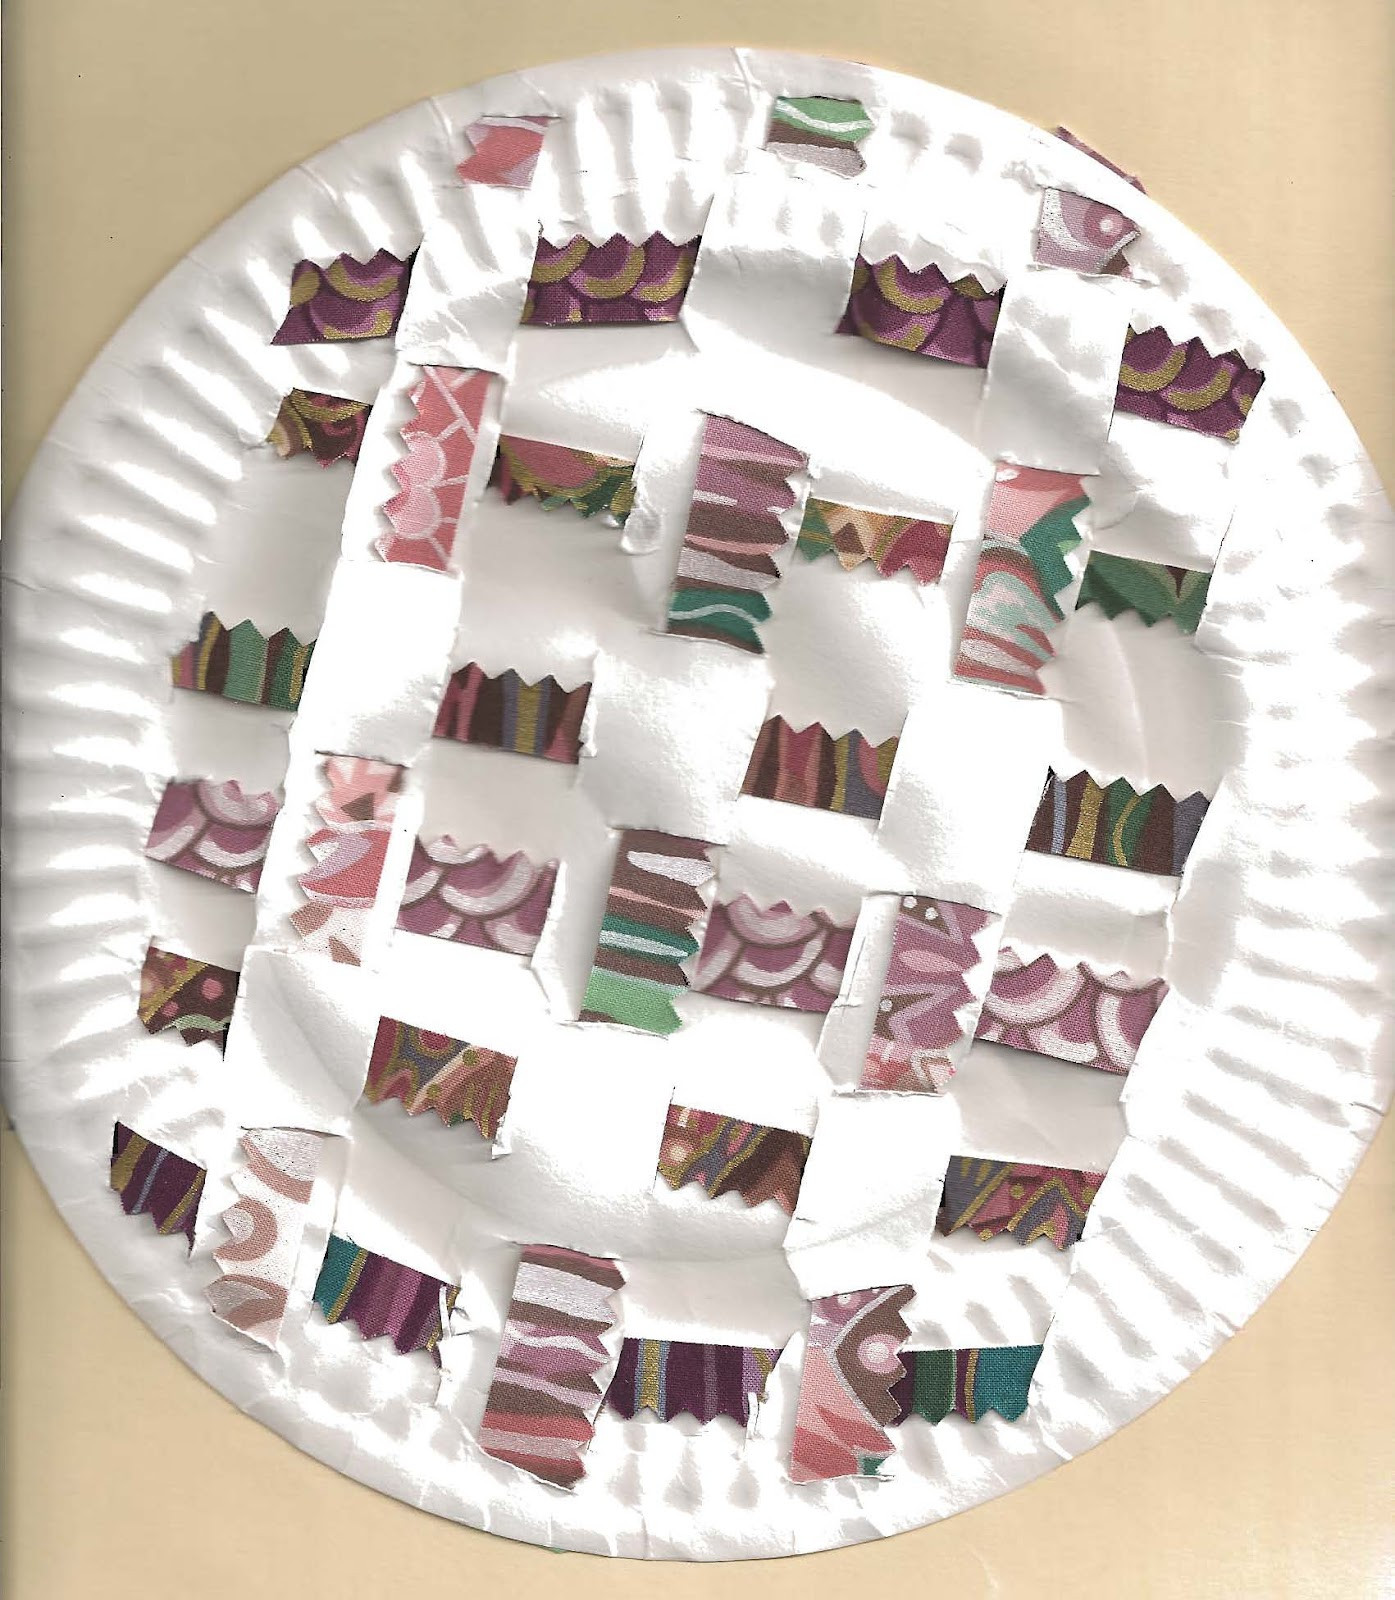 Crafts For Young Toddlers  Marsha s Reading & Crafts Cubbyhole Arts & Crafts